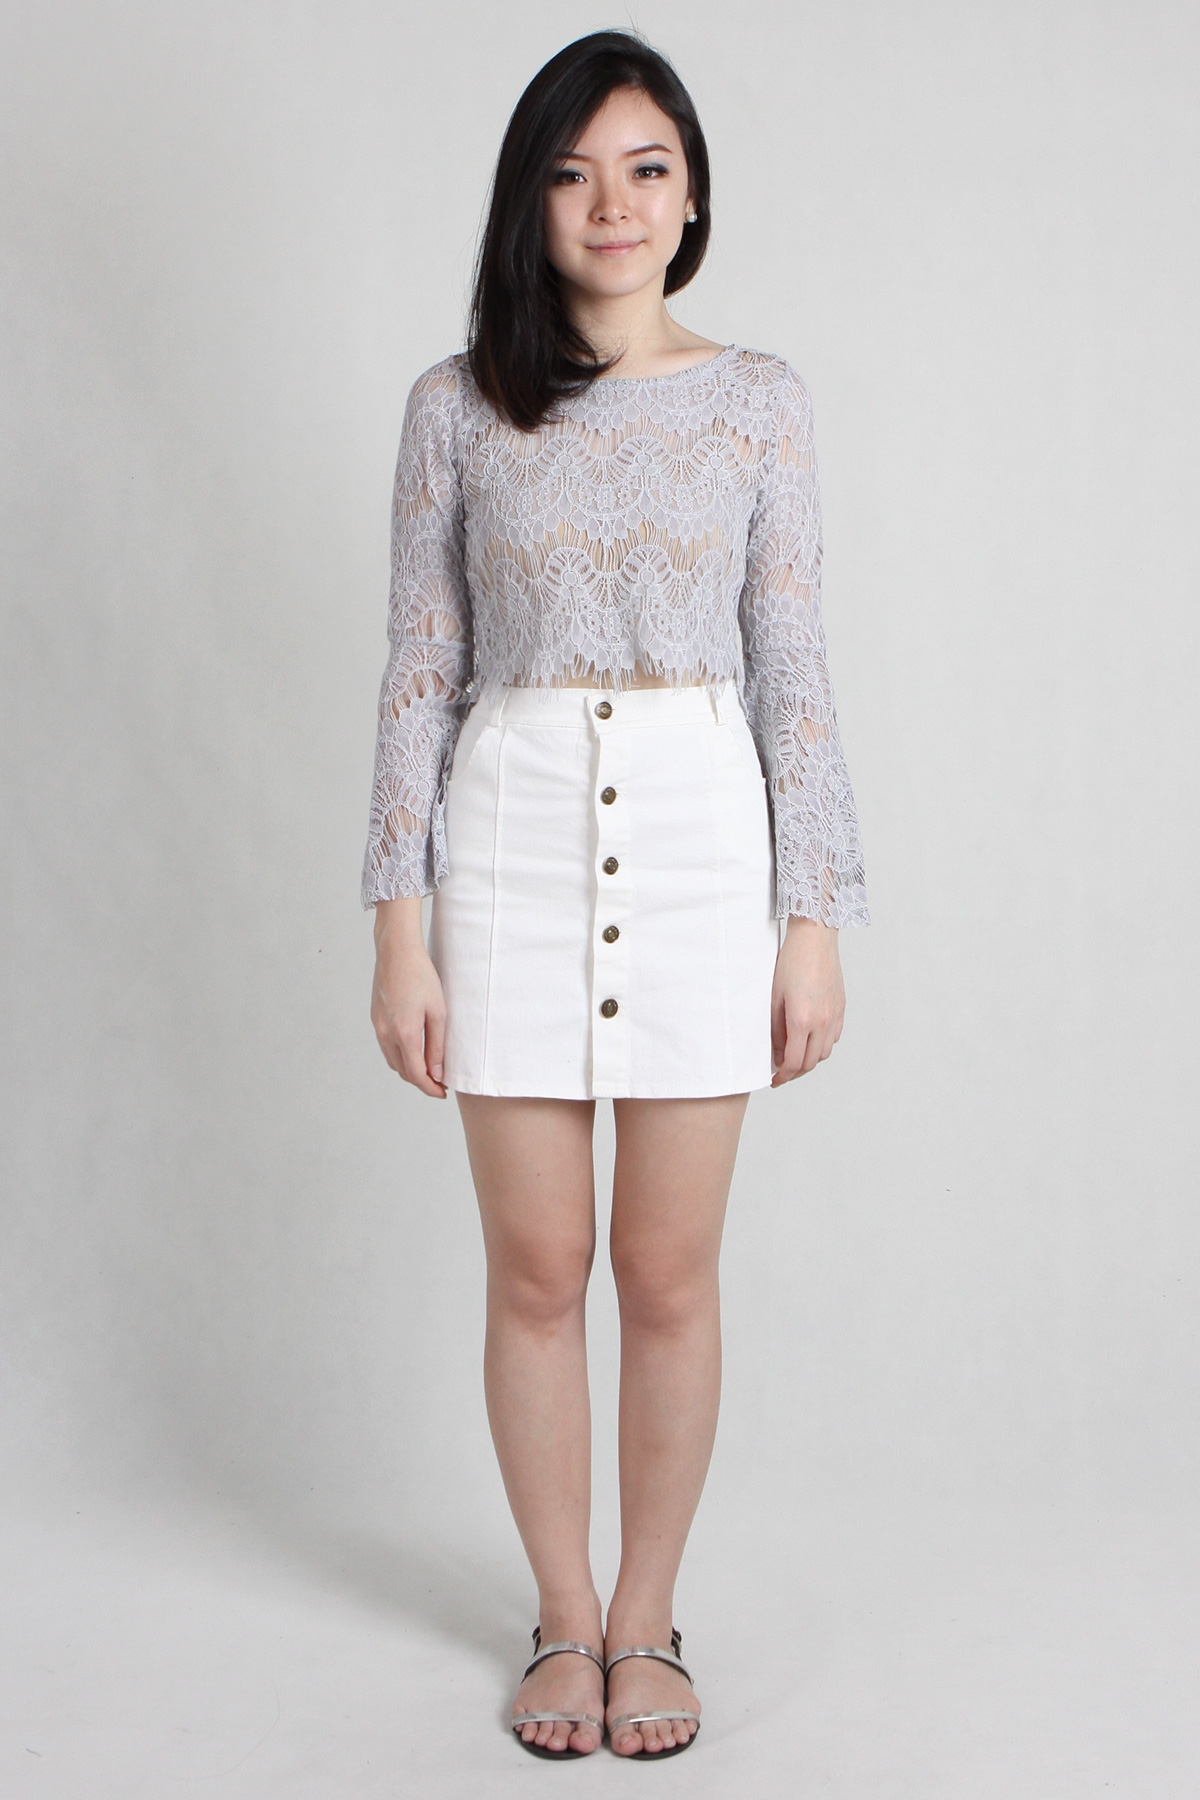 White Button Up Denim Skirt - Dress Ala